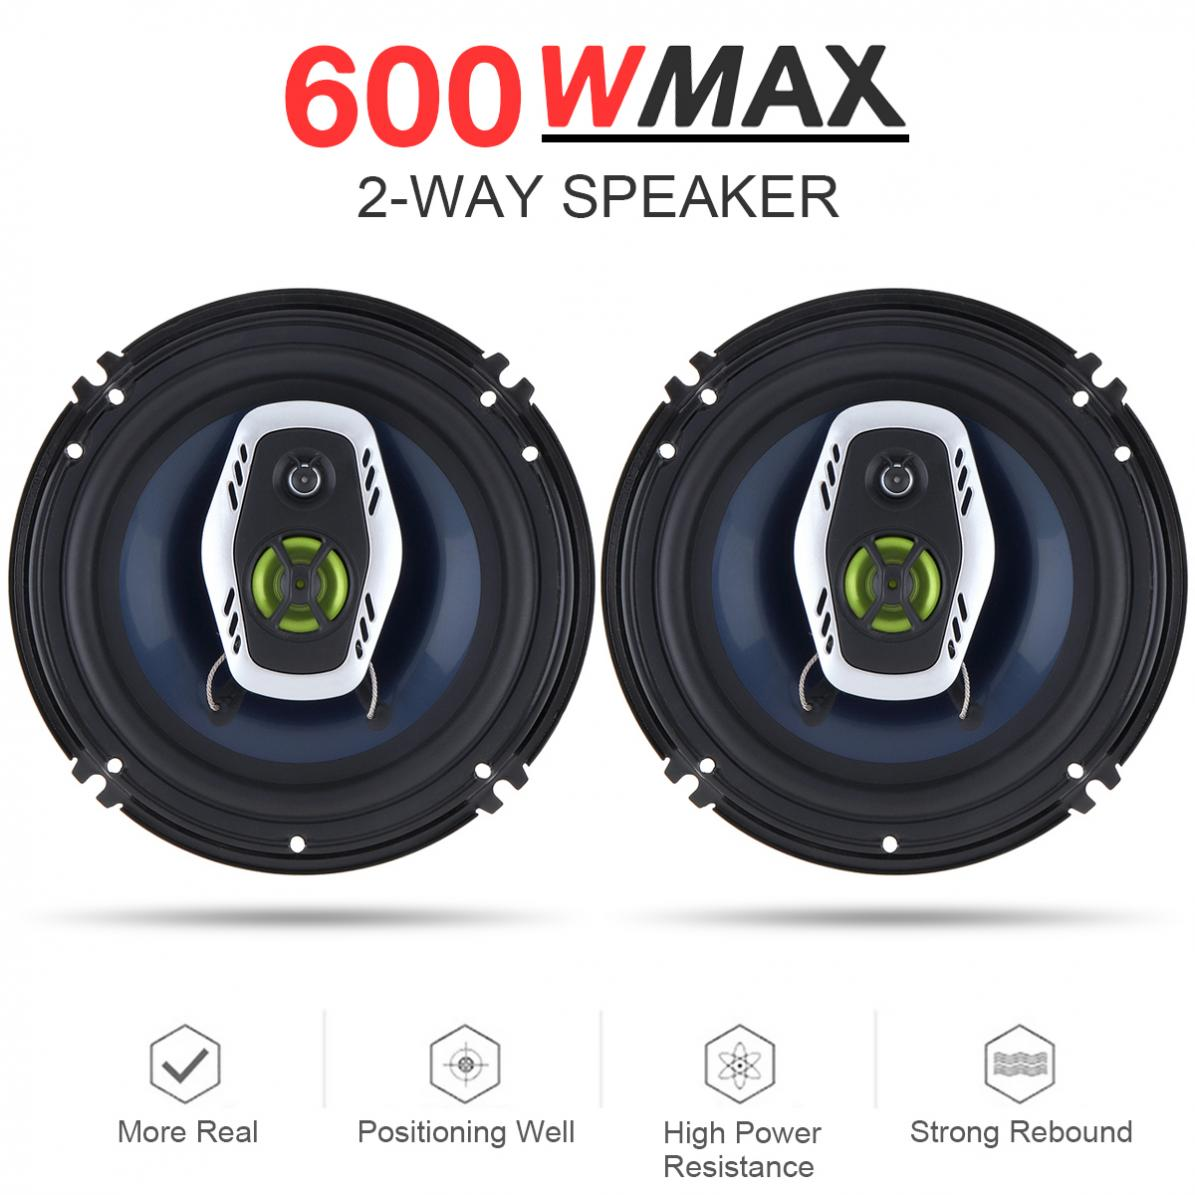 6 5 Inch 600w 2 Way Car Coaxial Auto Audio Music Stereo Full Range Frequency Hifi Speakers Non Destructive Installation Cheap Car Sound Systems Aftermarket Car Stereo From Bdauto 36 05 Dhgate Com